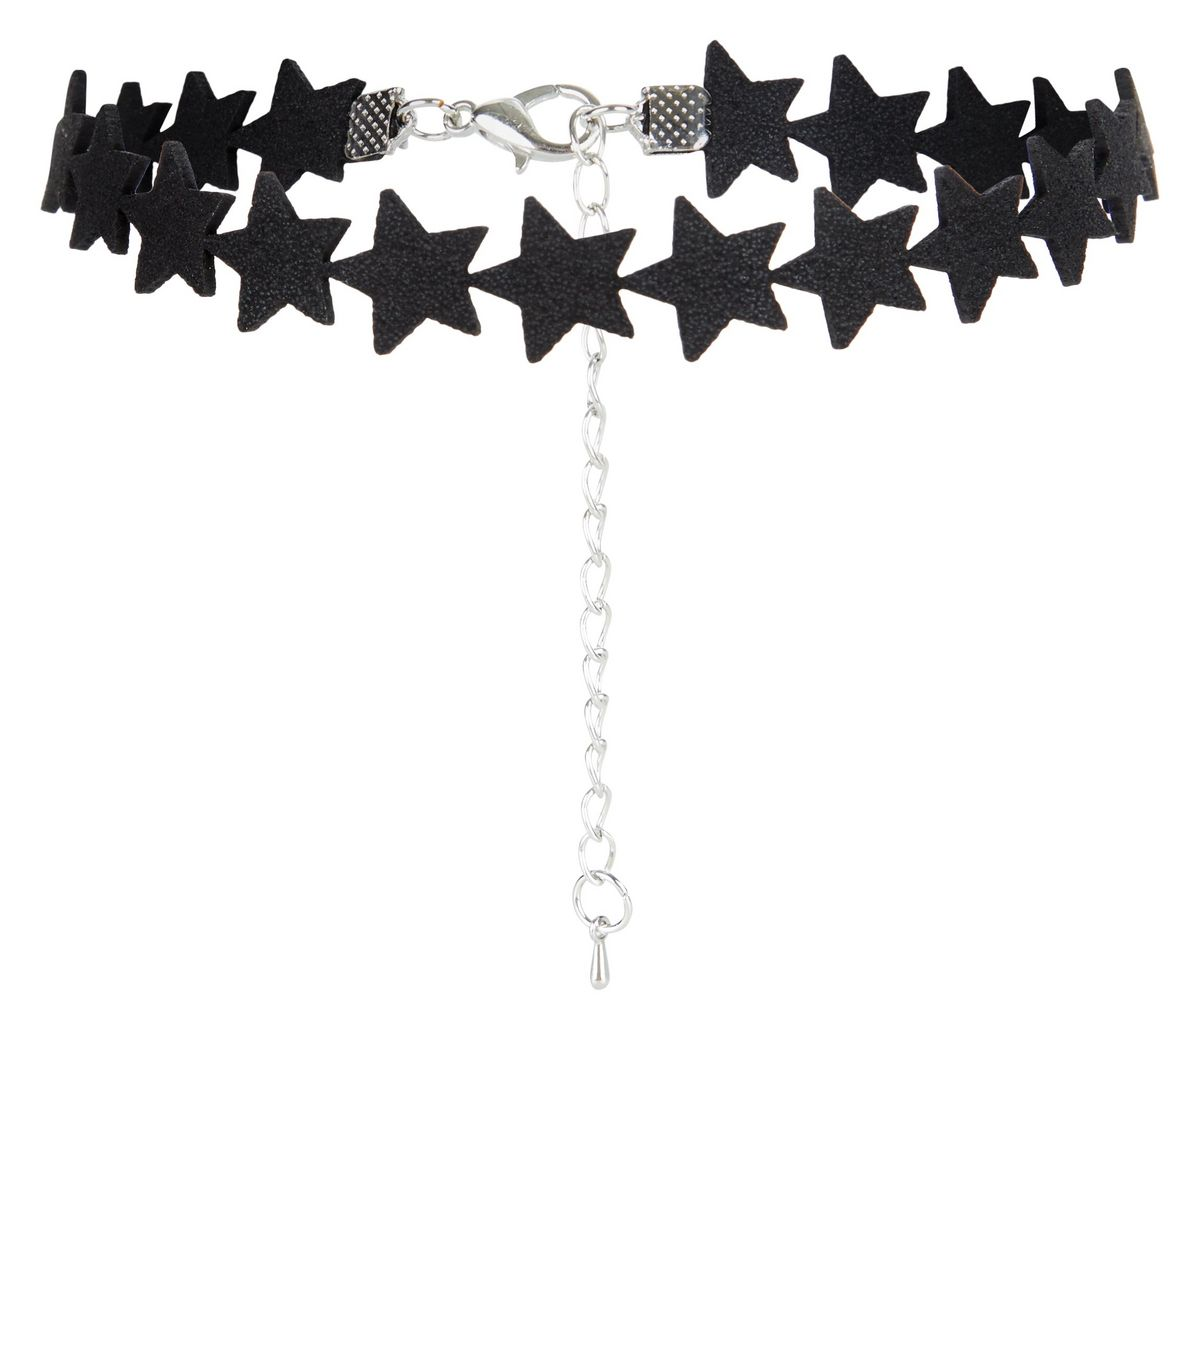 http://media.newlookassets.com/i/newlook/386366601/womens/jewellery-and-hair-accessories/necklaces/black-suedette-star-choker/?$new_pdp_szoom_image_1200$